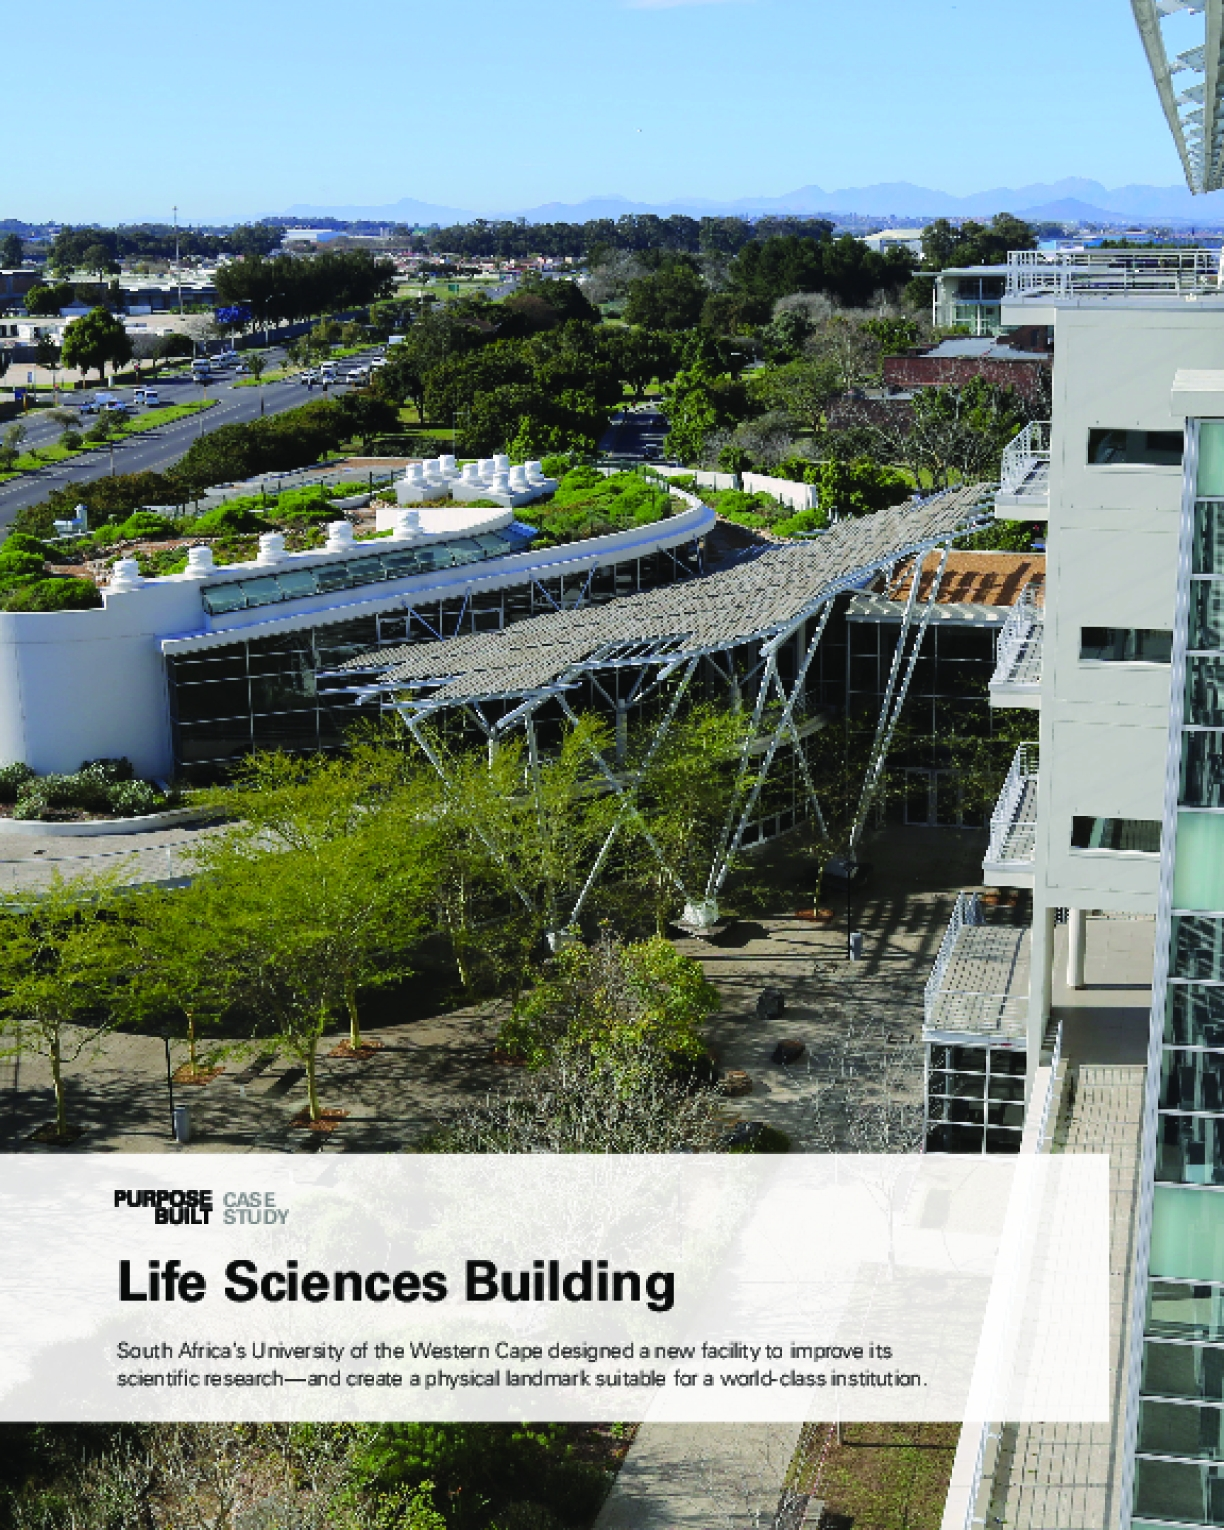 Purpose Built Case Study: Life Sciences Building